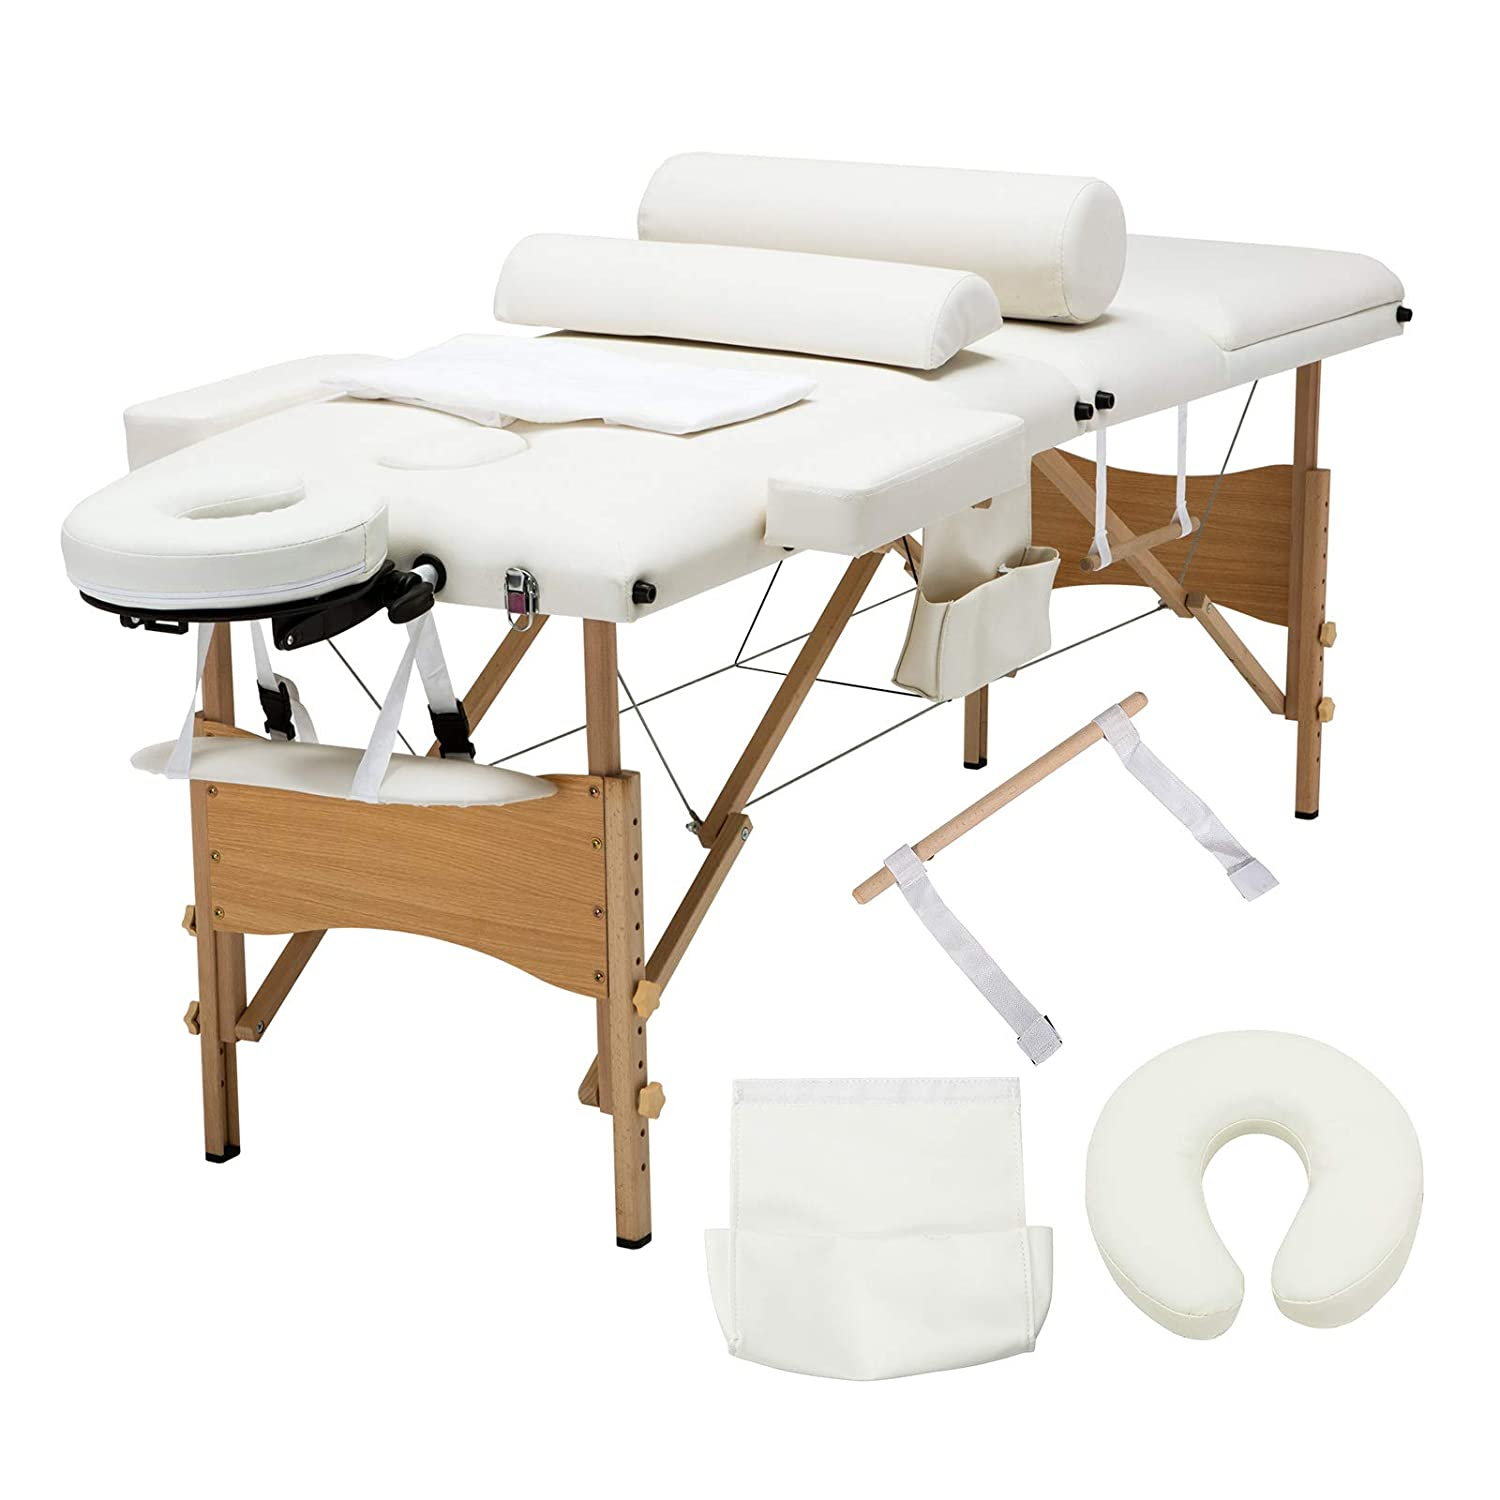 Uenjoy Folding Massage Table 84'' Professional Massage Bed Luxury-Model with Additional Accessories 3 Fold, Pink